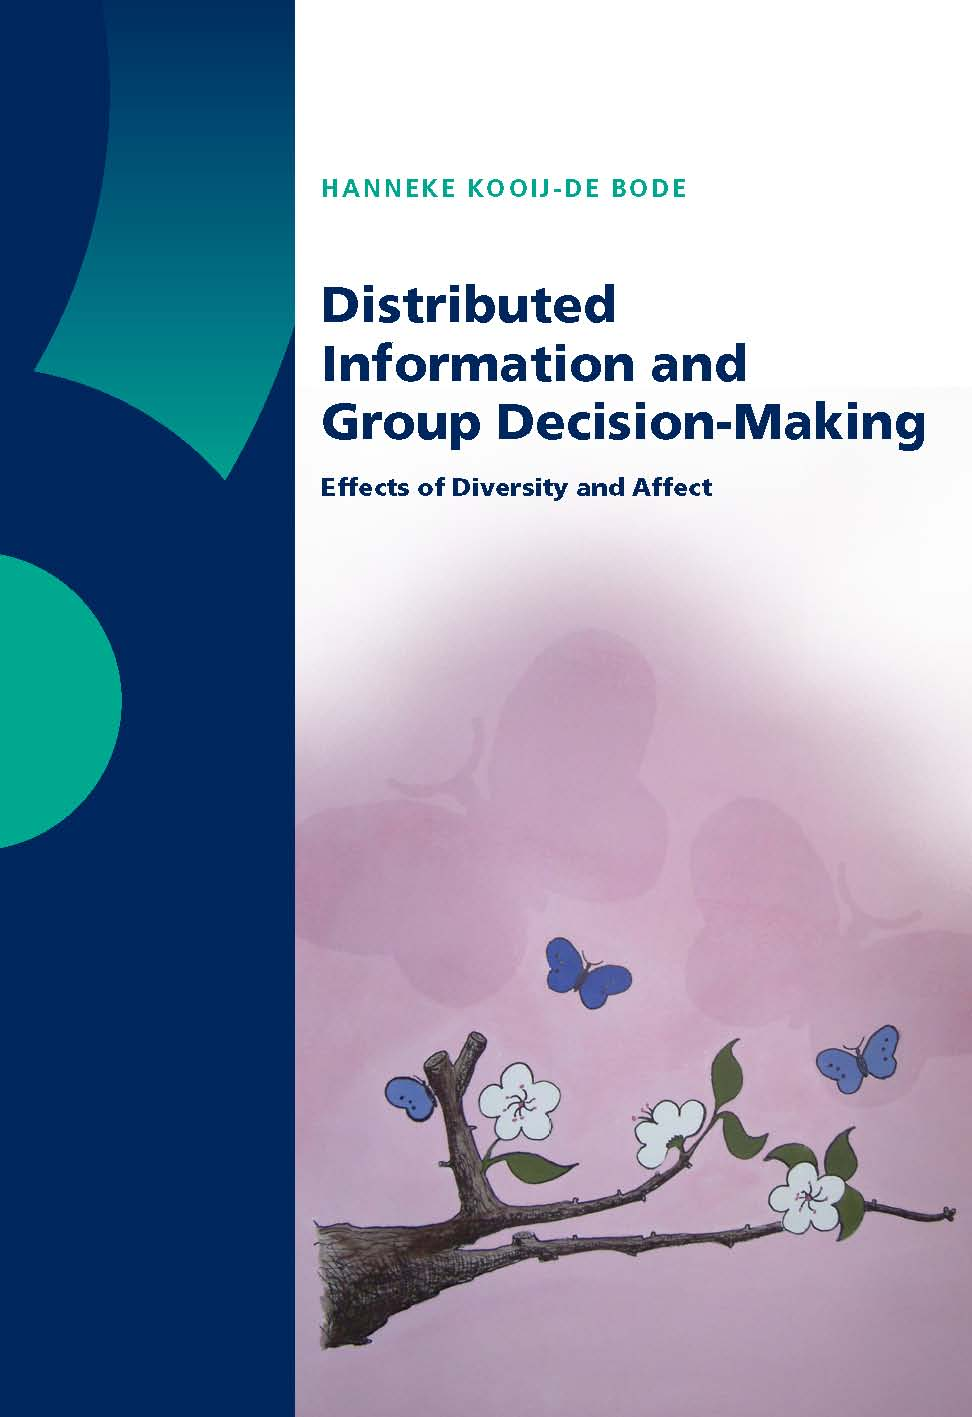 Distributed Information and Group Decision-Making: Effects of Diversity and Affect